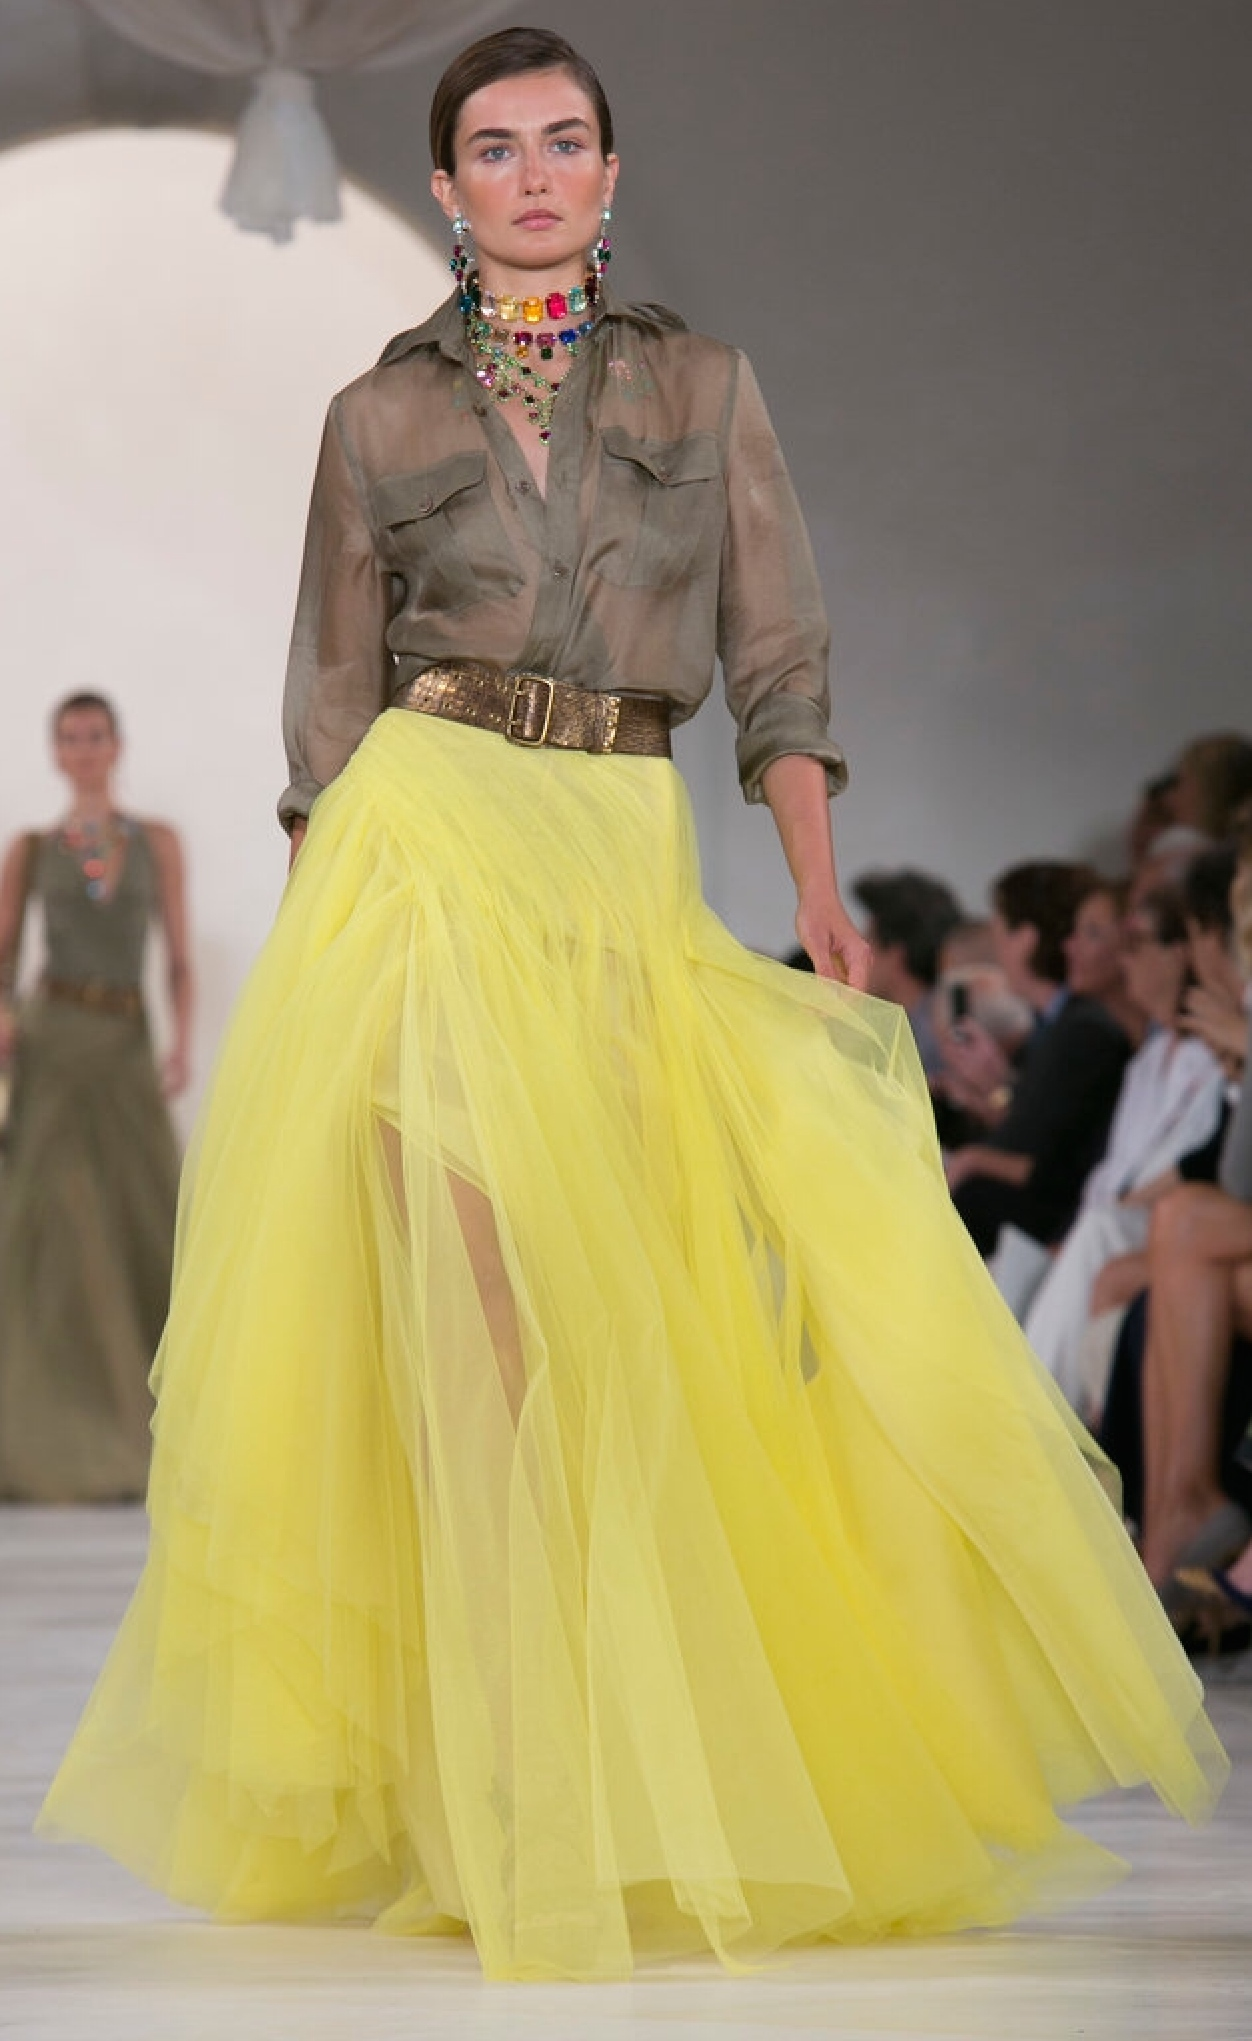 Ralph Lauren's safari tones are brightened with yellow tulle and a sheer iridescent button down shirt.